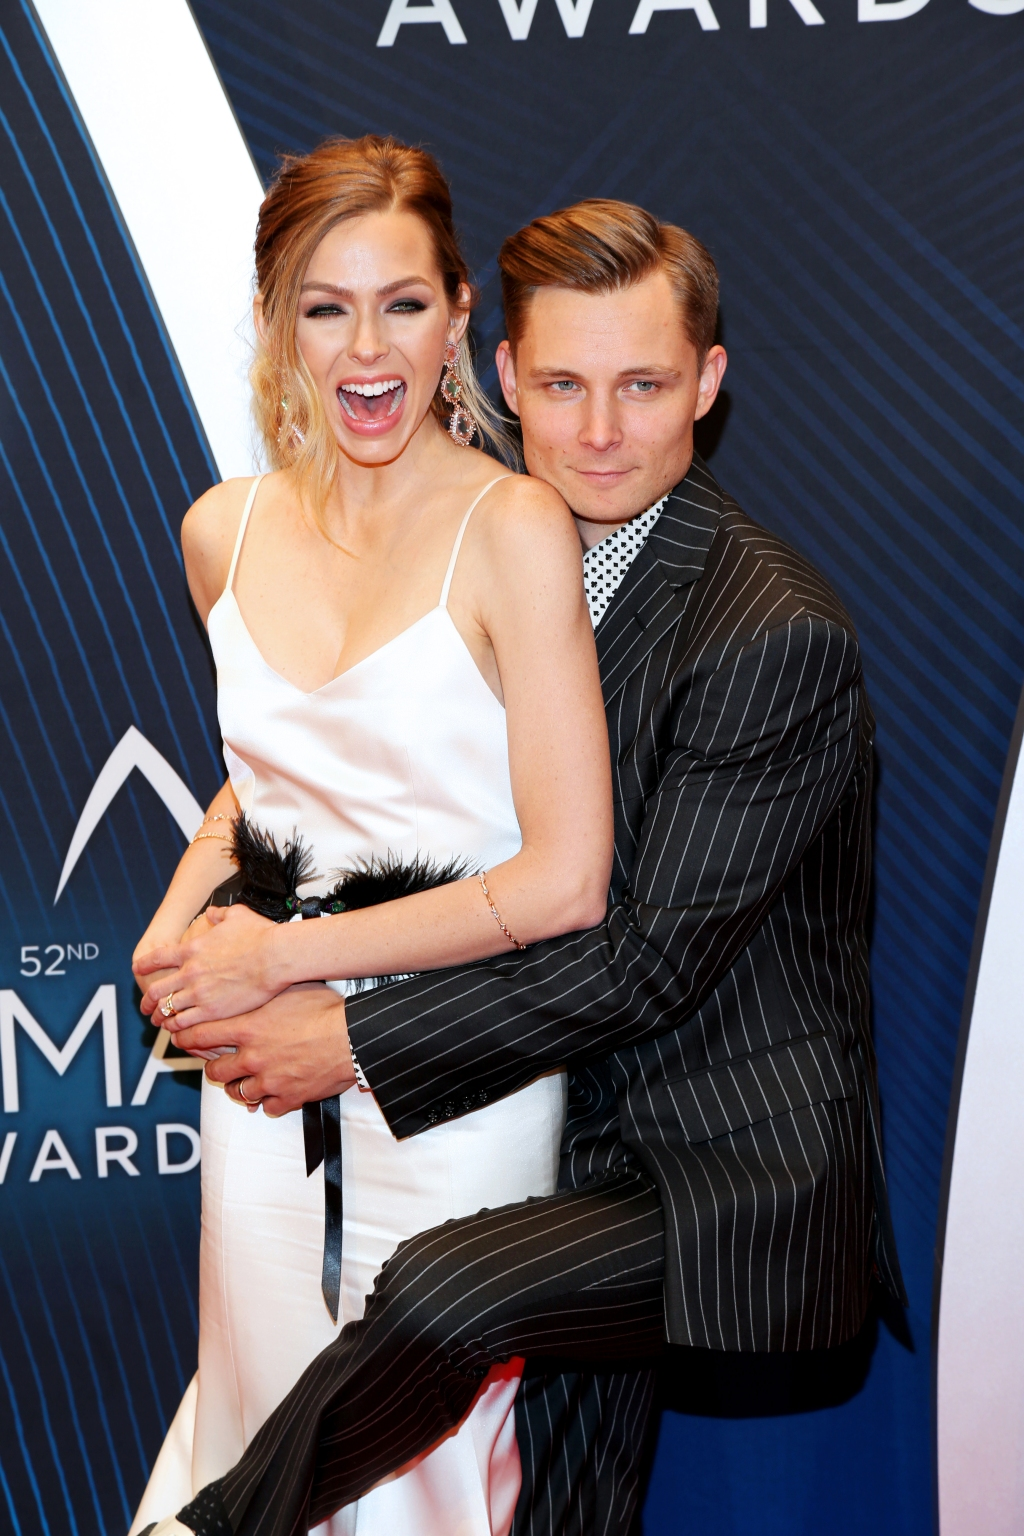 """Sunshine & Whiskey"" singer Frankie Ballard gets close with Christina Murphy on the CMA Awards red carpet."